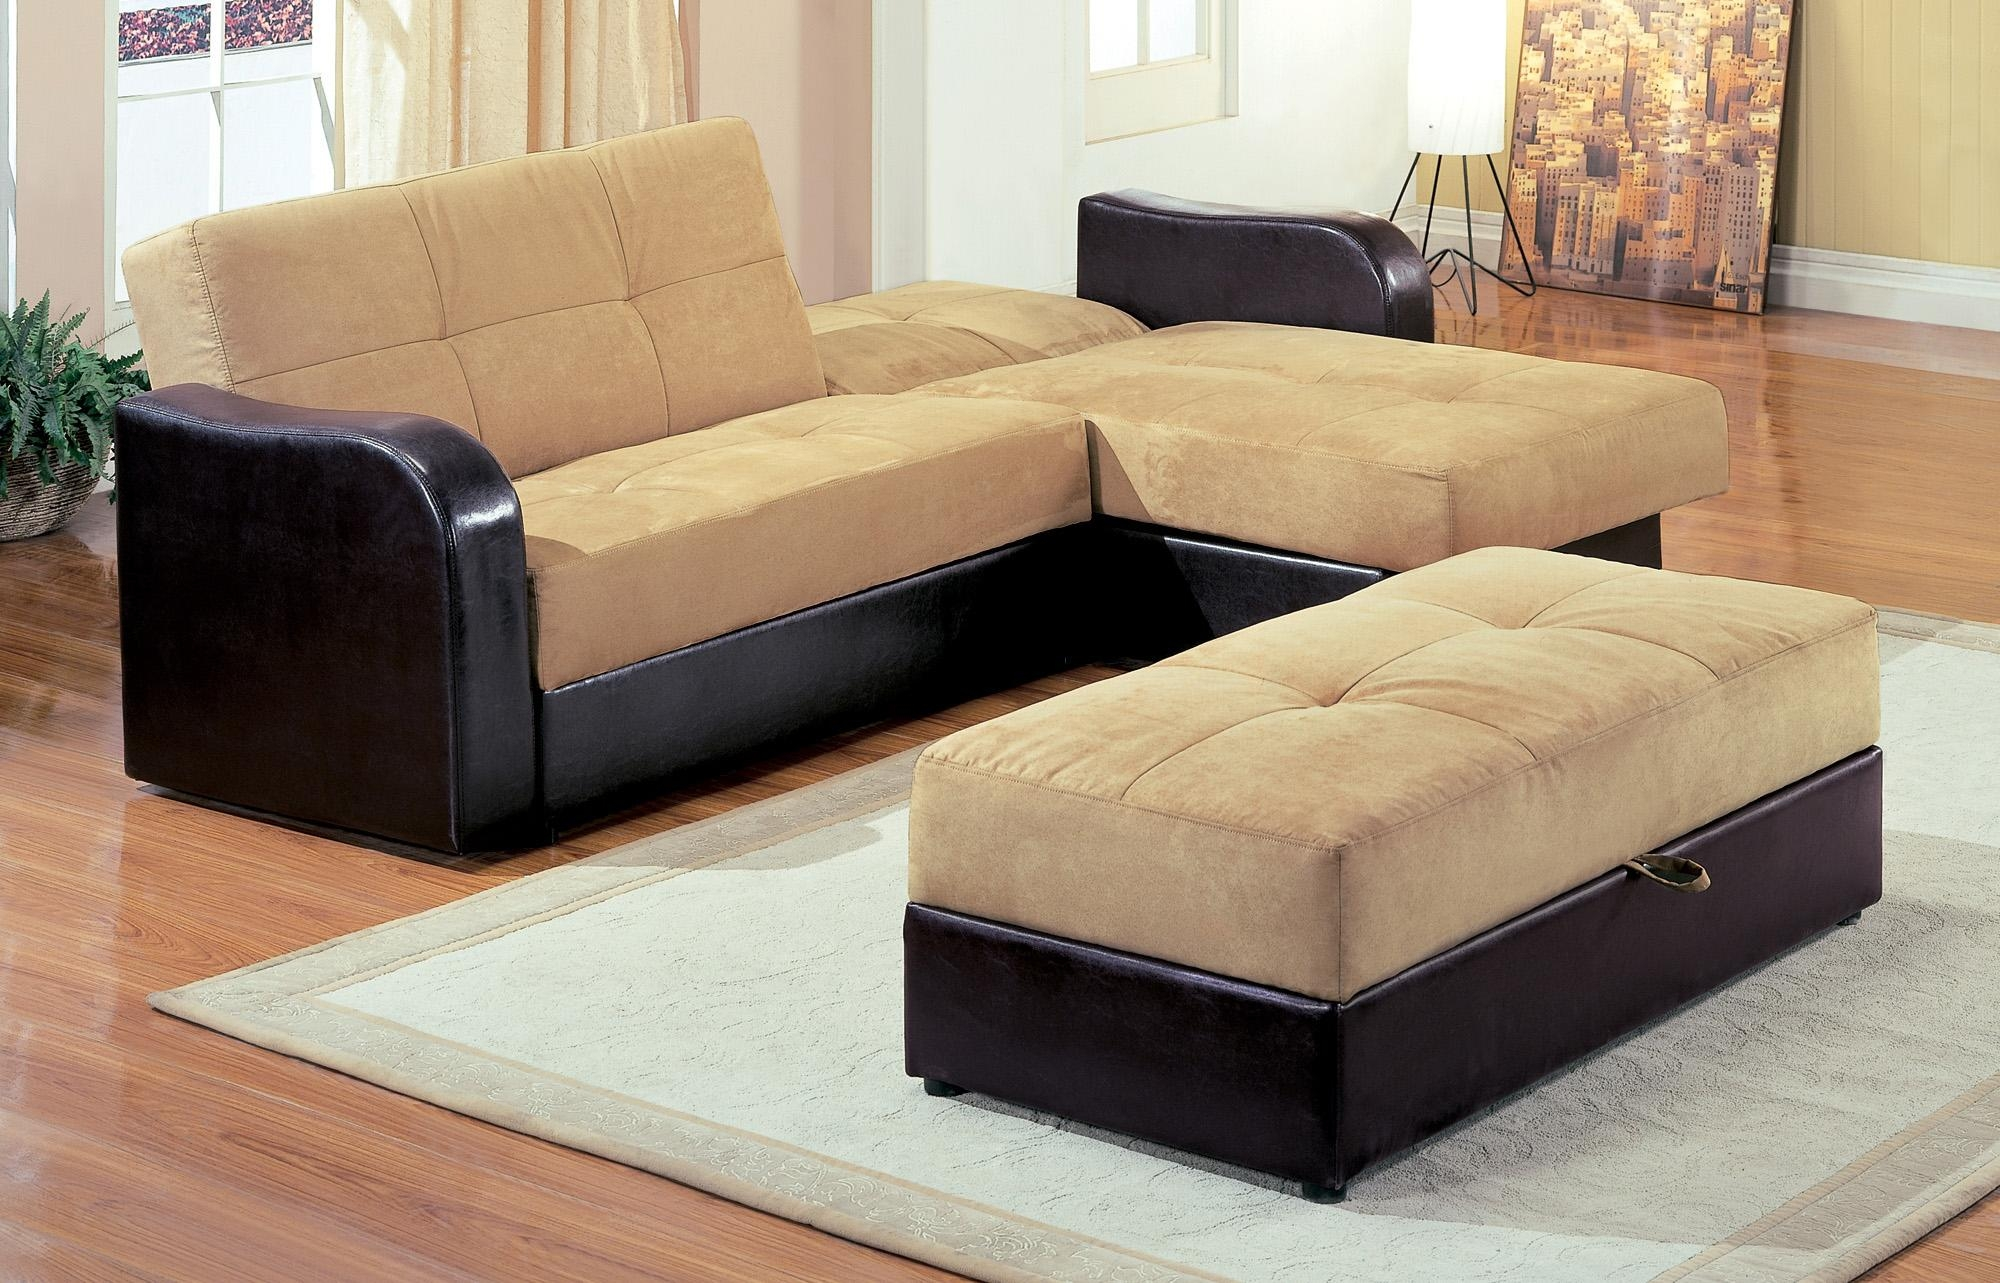 Choose Right L Shaped Sofa Bed | Thediapercake Home Trend In L Shaped Sofa Bed (Image 3 of 20)